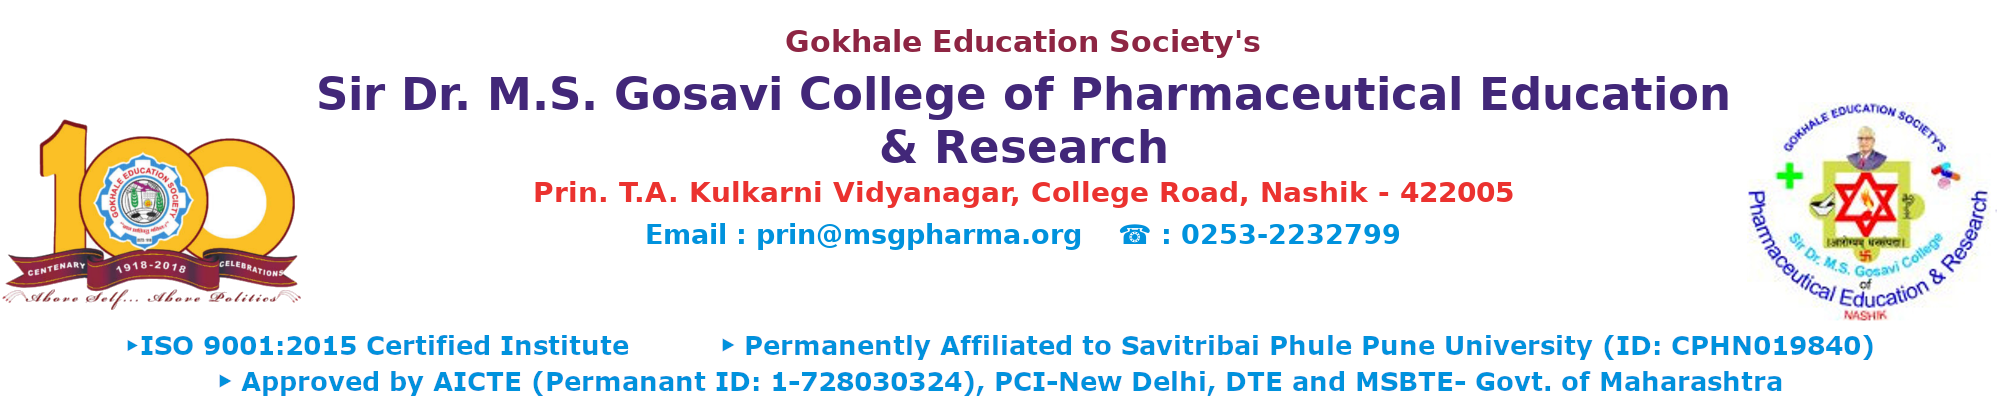 Sir Dr. M.S. Gosavi College of Pharmaceutical Education and Research